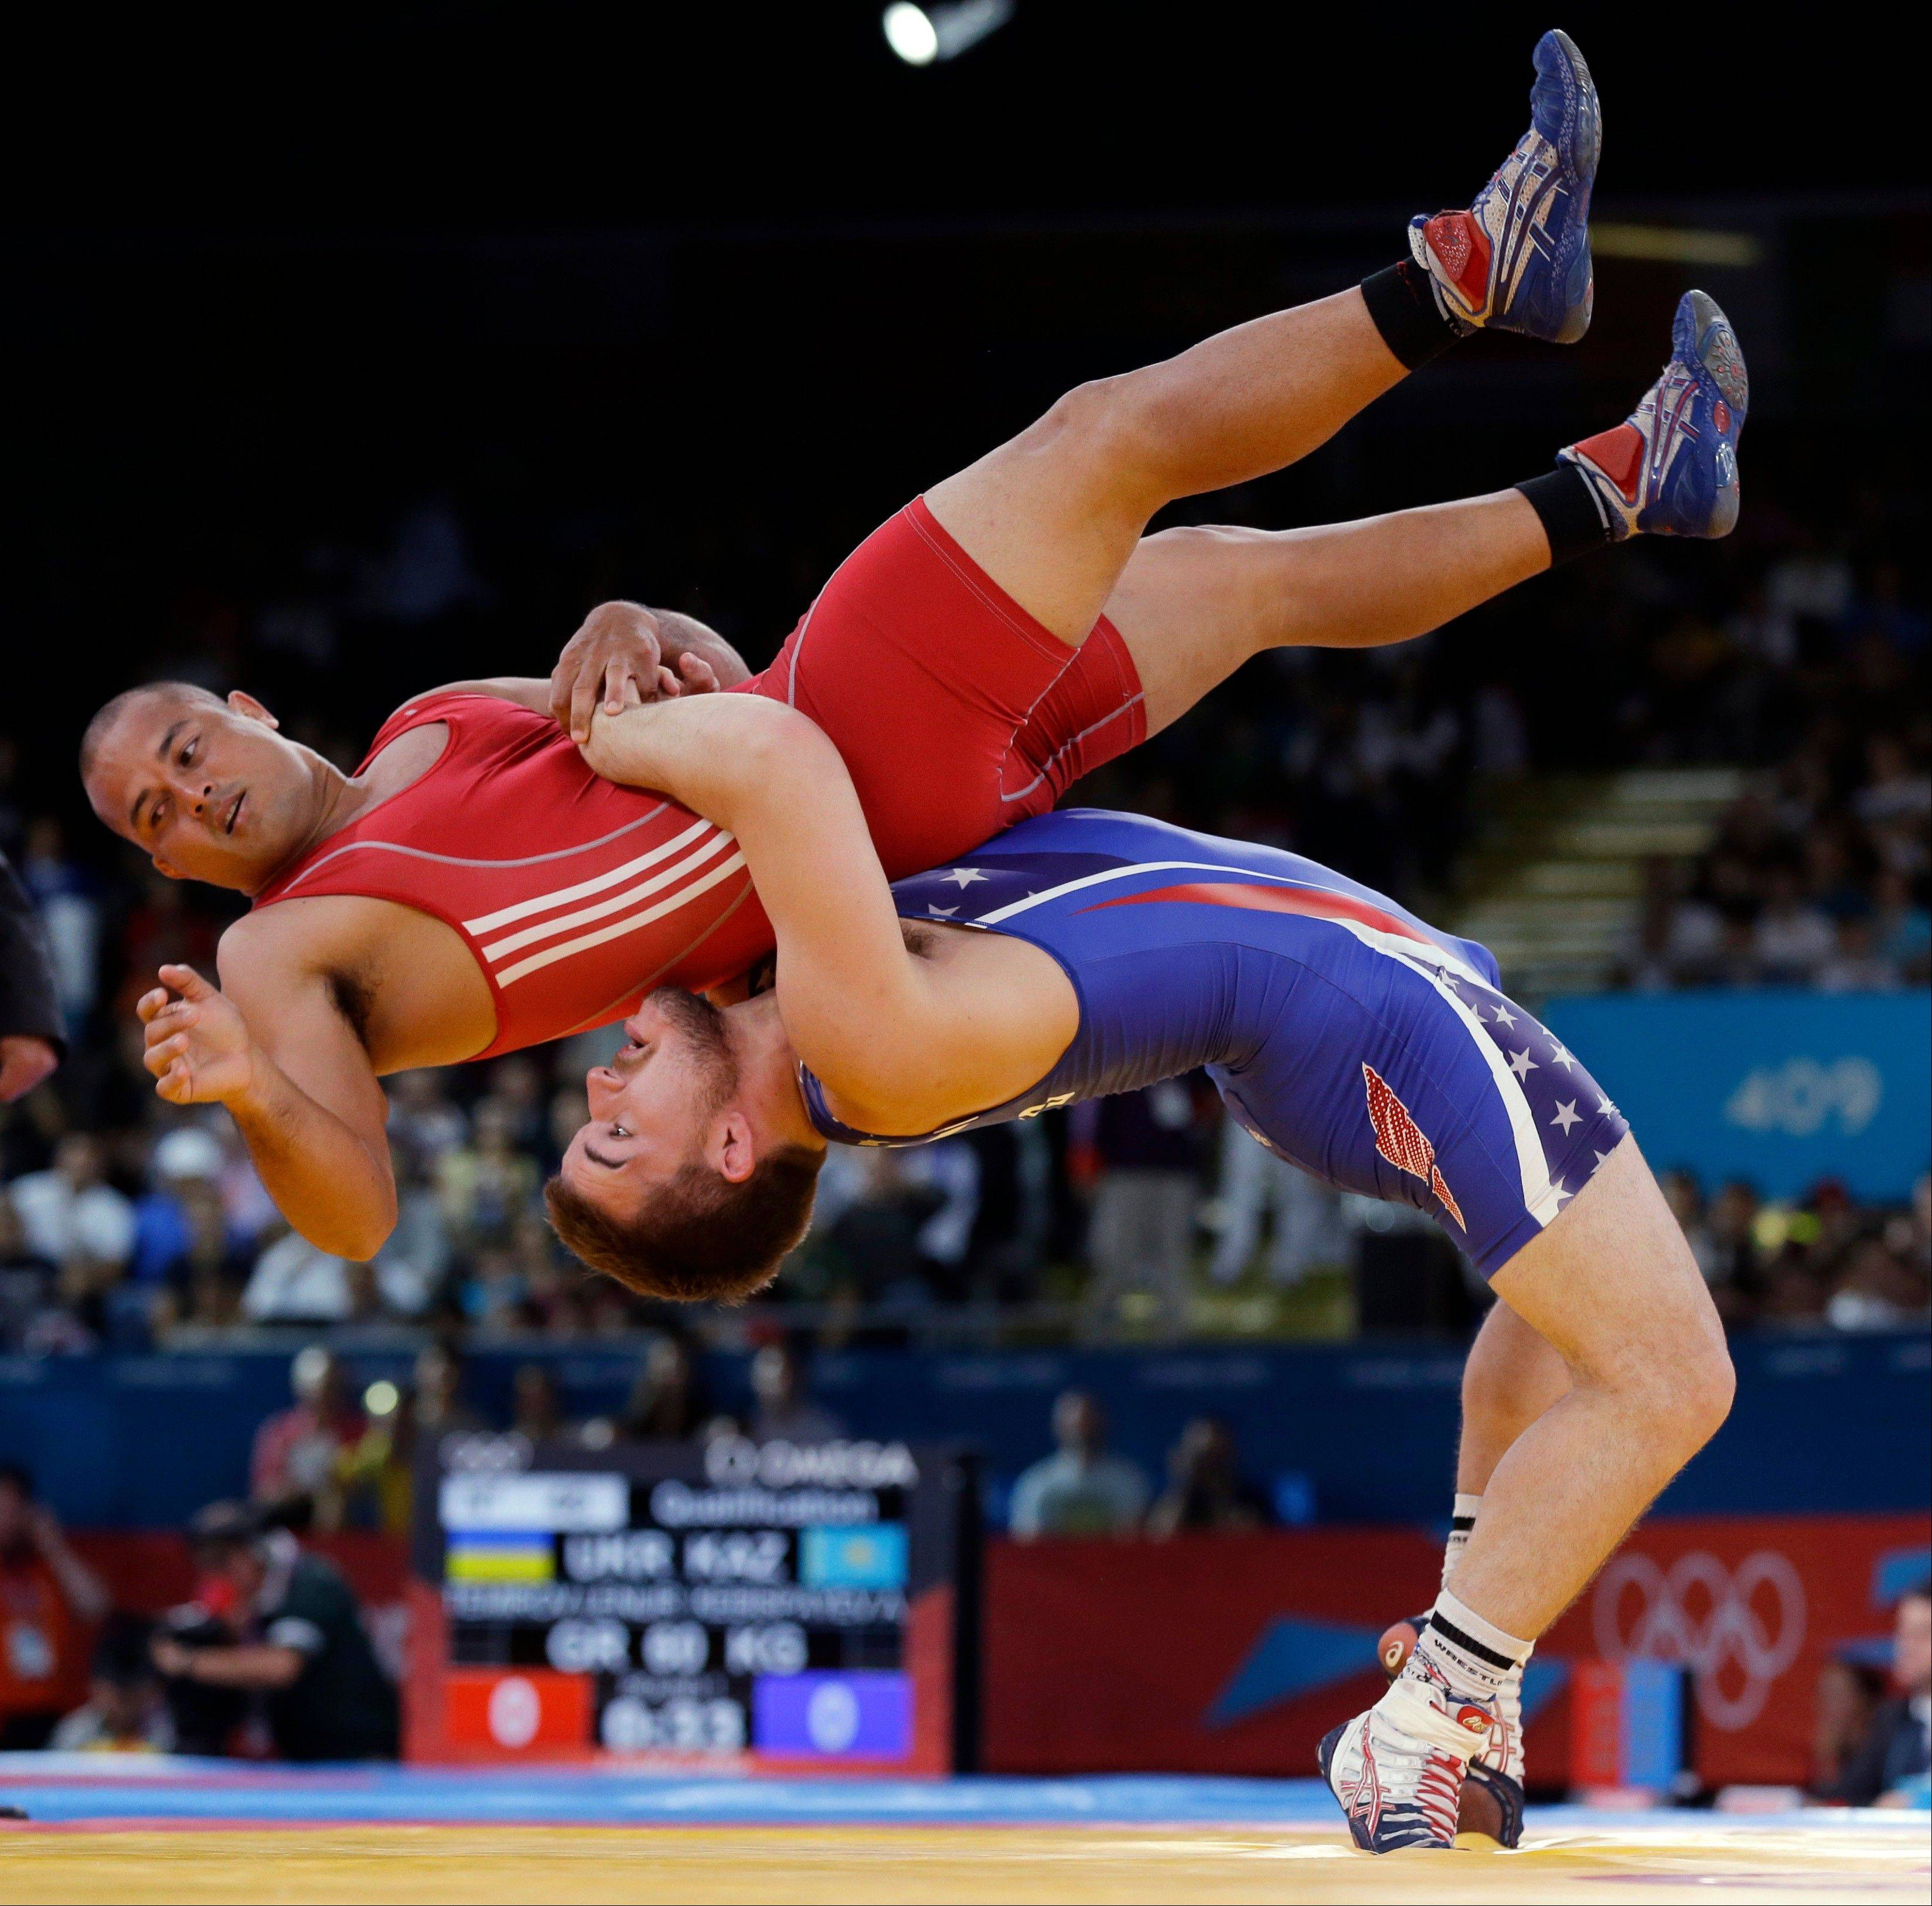 Keitani Graham of Micronesia competes against Charles Edward Betts of the United States, right, during the 84-kg Greco-Roman wrestling competition at the 2012 Summer Olympics, Monday, Aug. 6, 2012, in London.